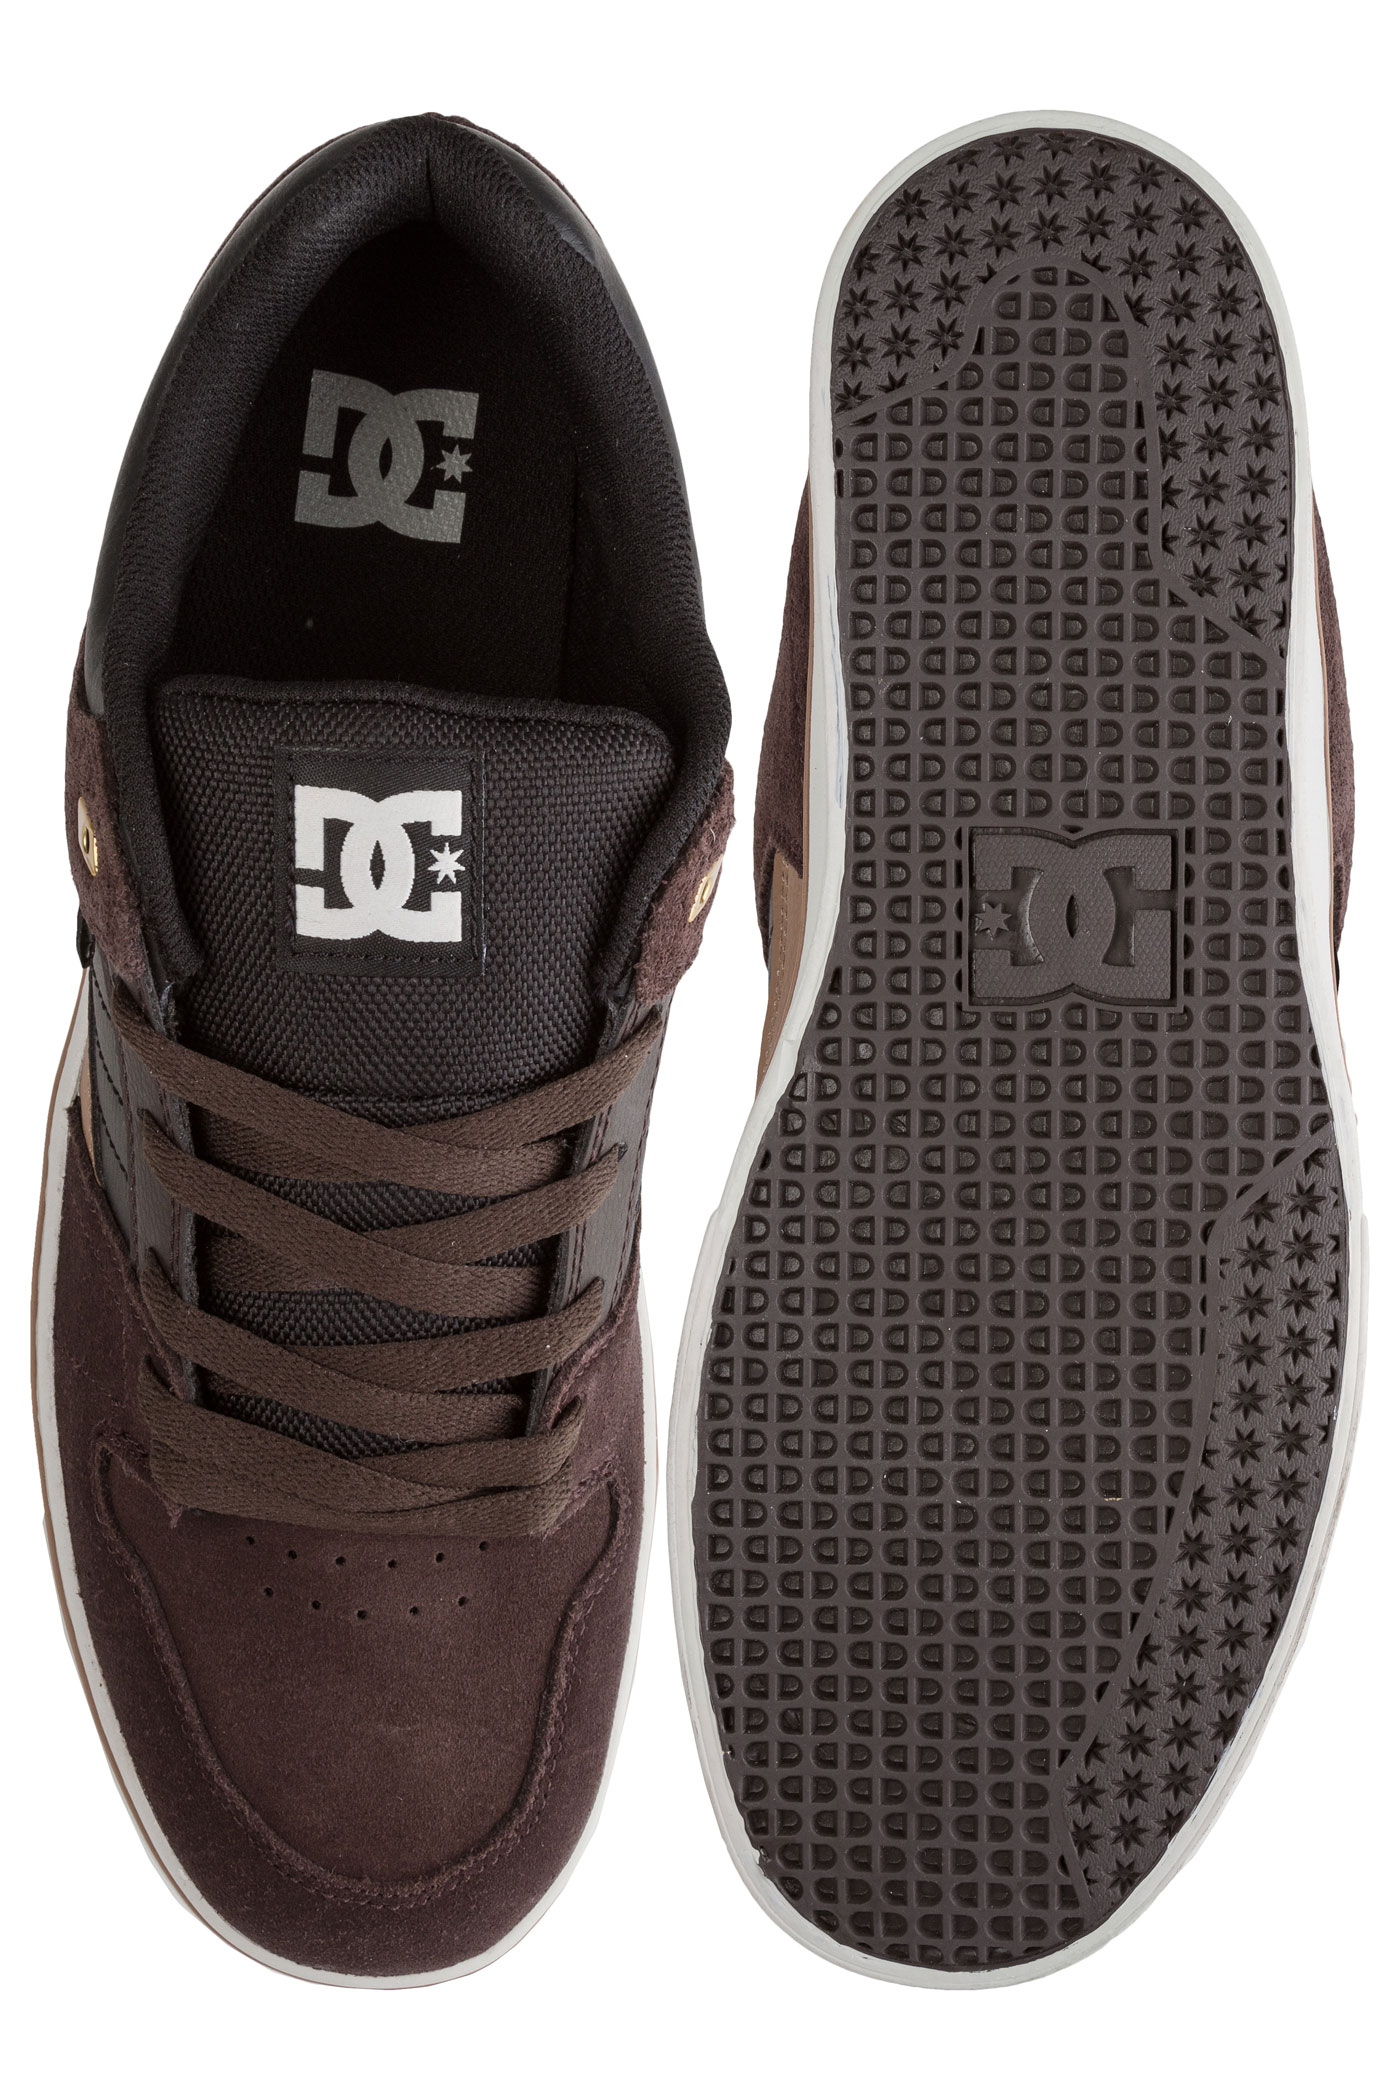 Dc 2 Chaussurebrown Se Combo Course mN8nO0vw